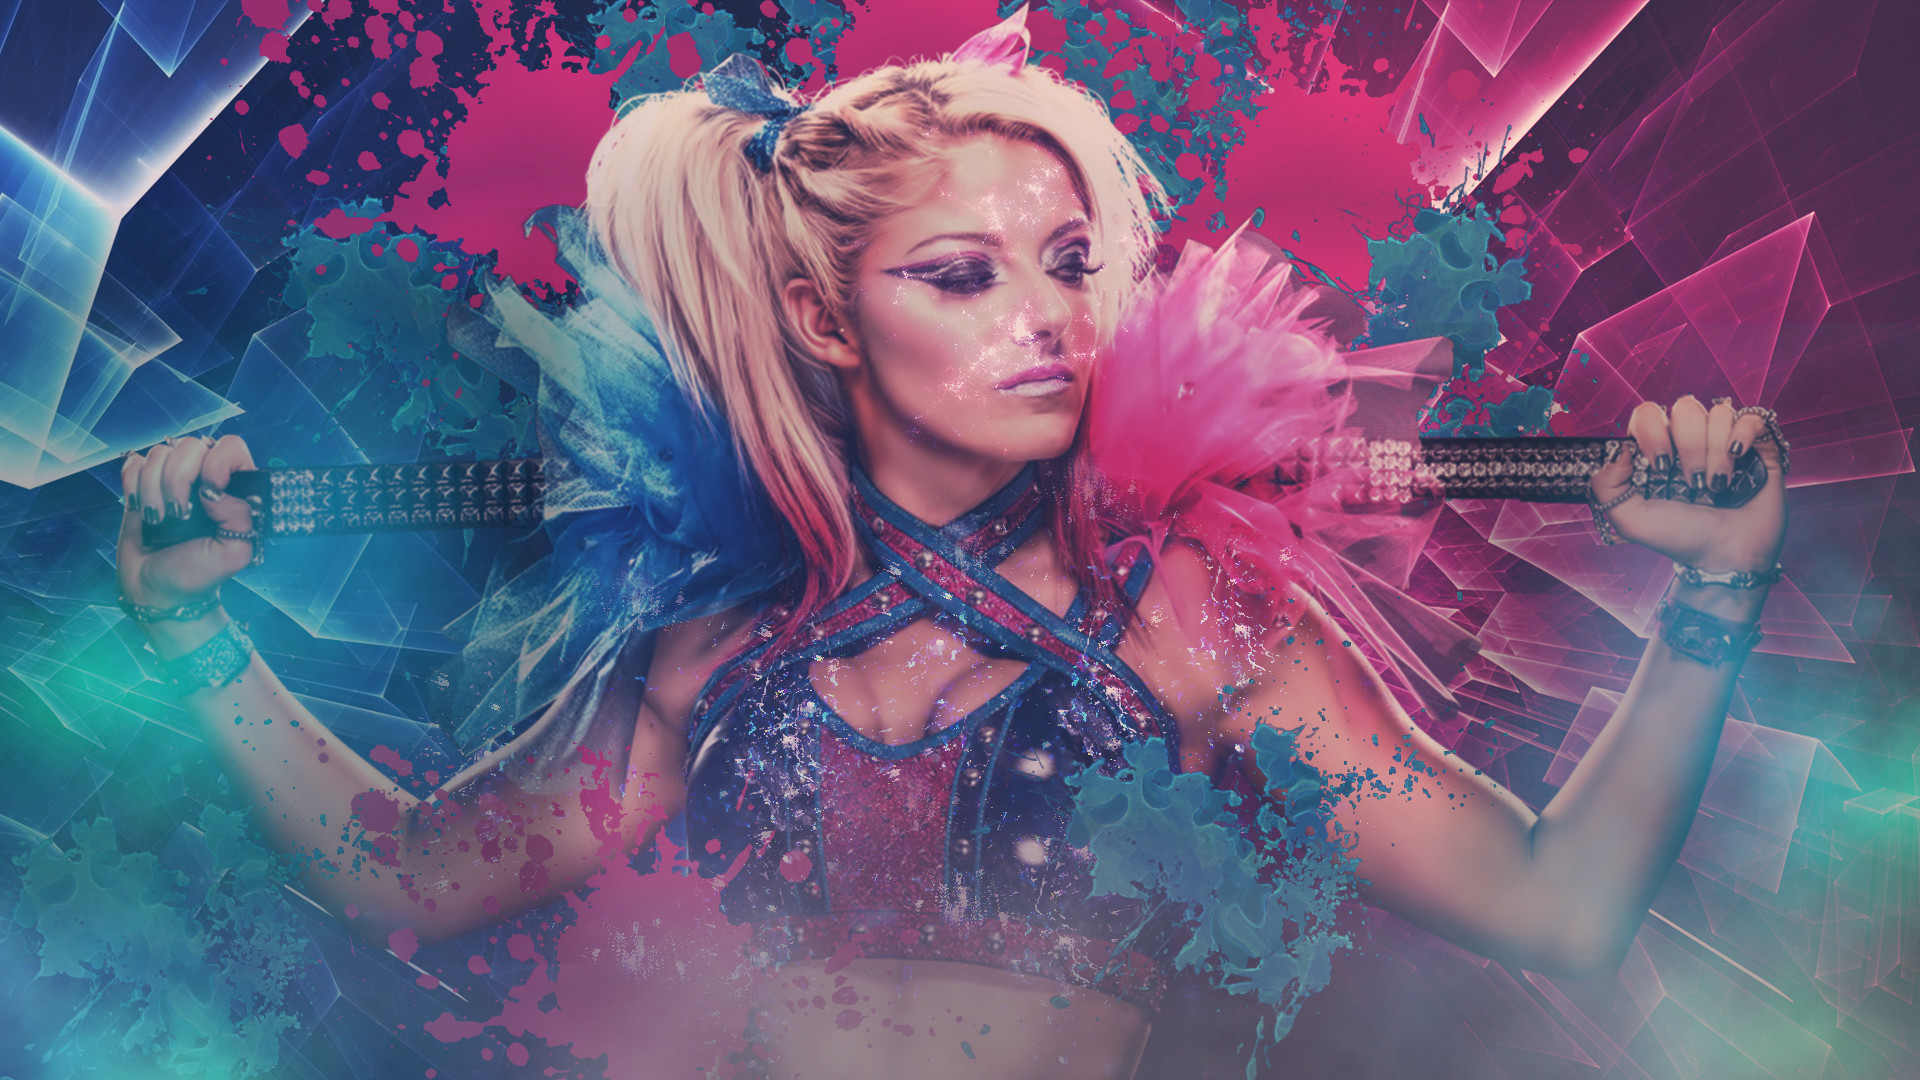 1920x1080 ImageAlexa Bliss Wallpaper, what do you think?